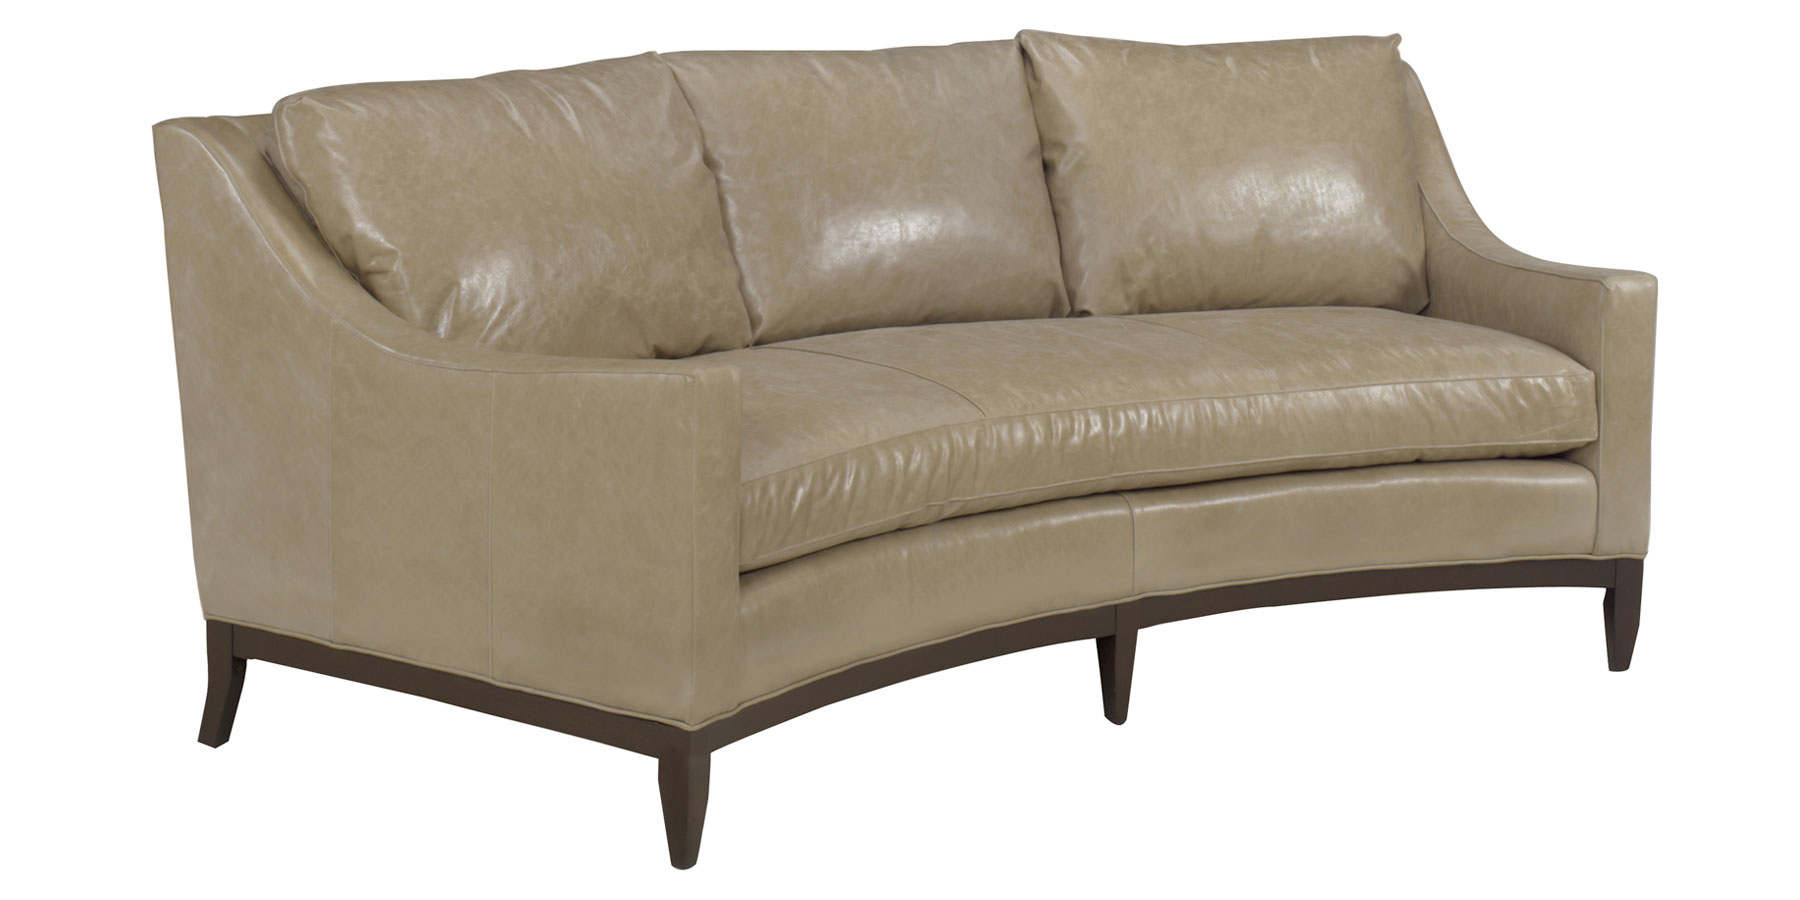 Leather Furniture gt Cedric Designer Style Curved Conversation Sofa